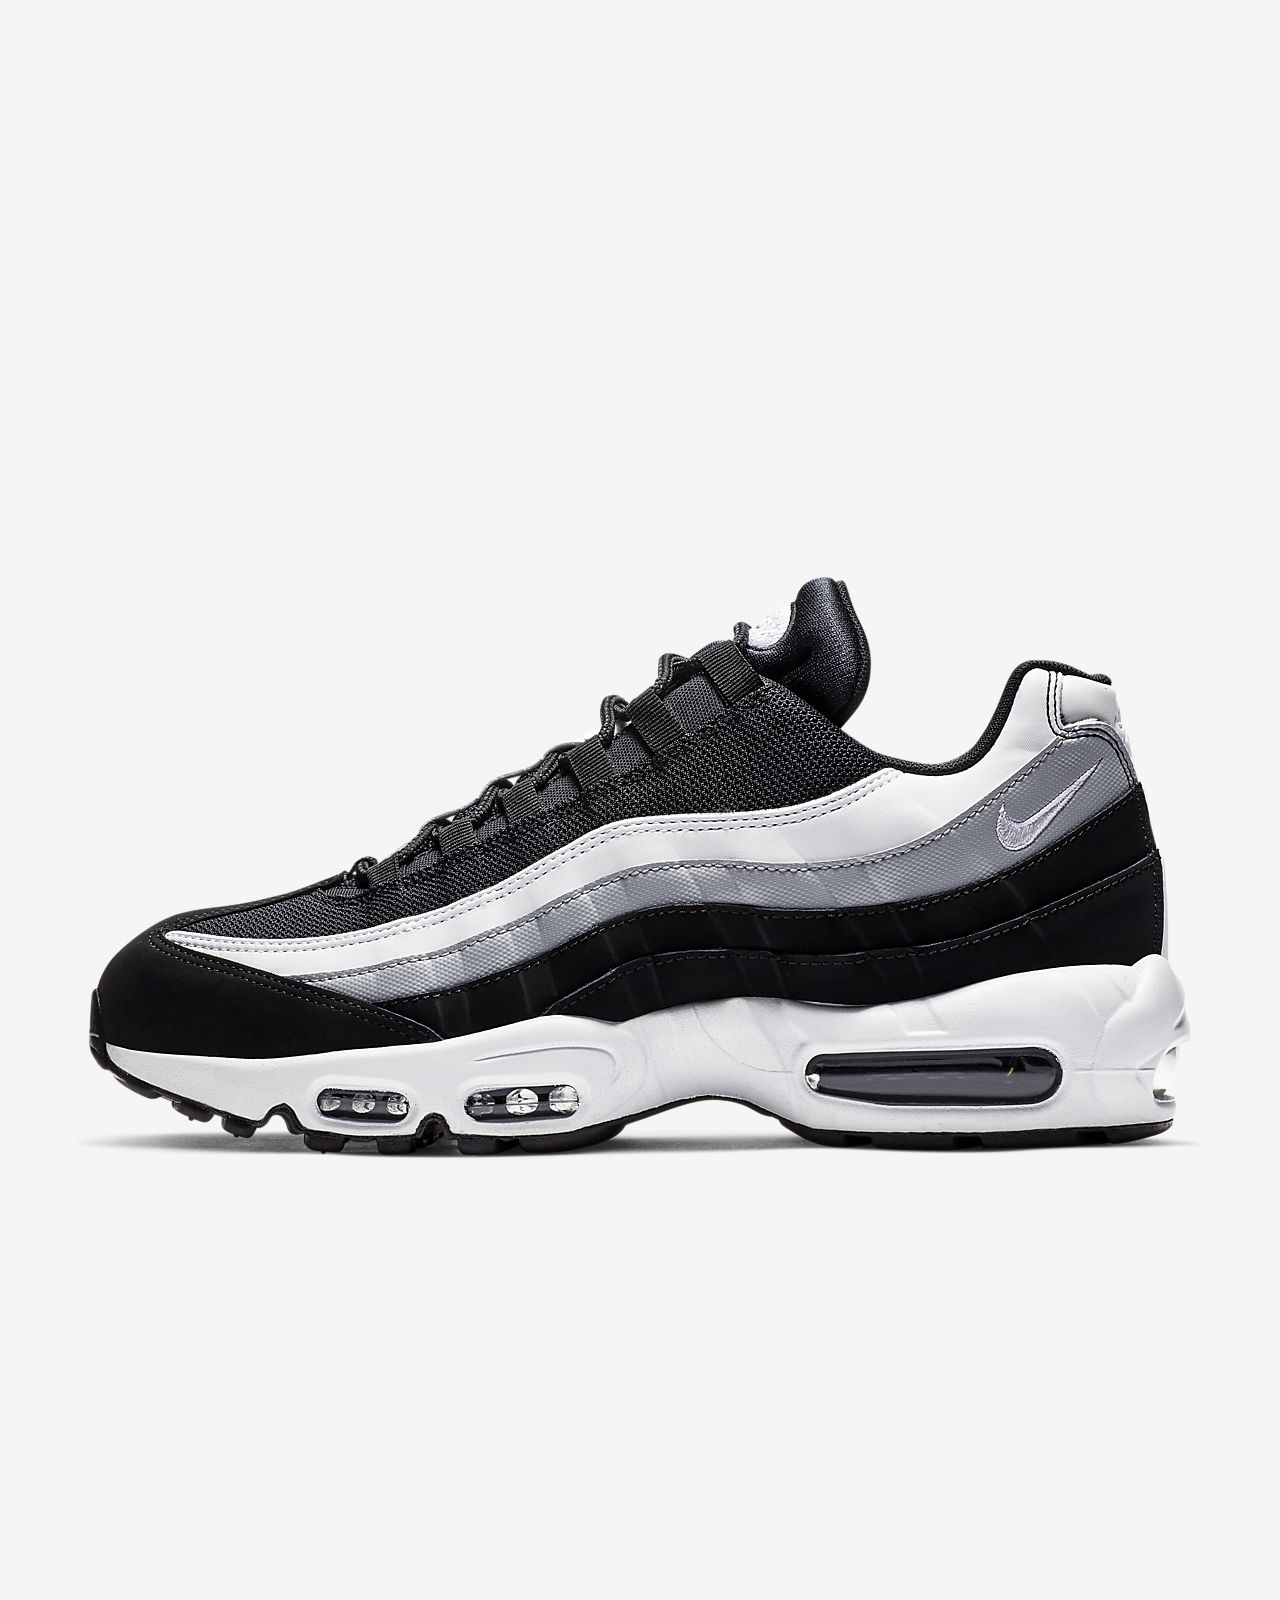 54659db80d Nike Air Max 95 Essential Men's Shoe. Nike.com MY